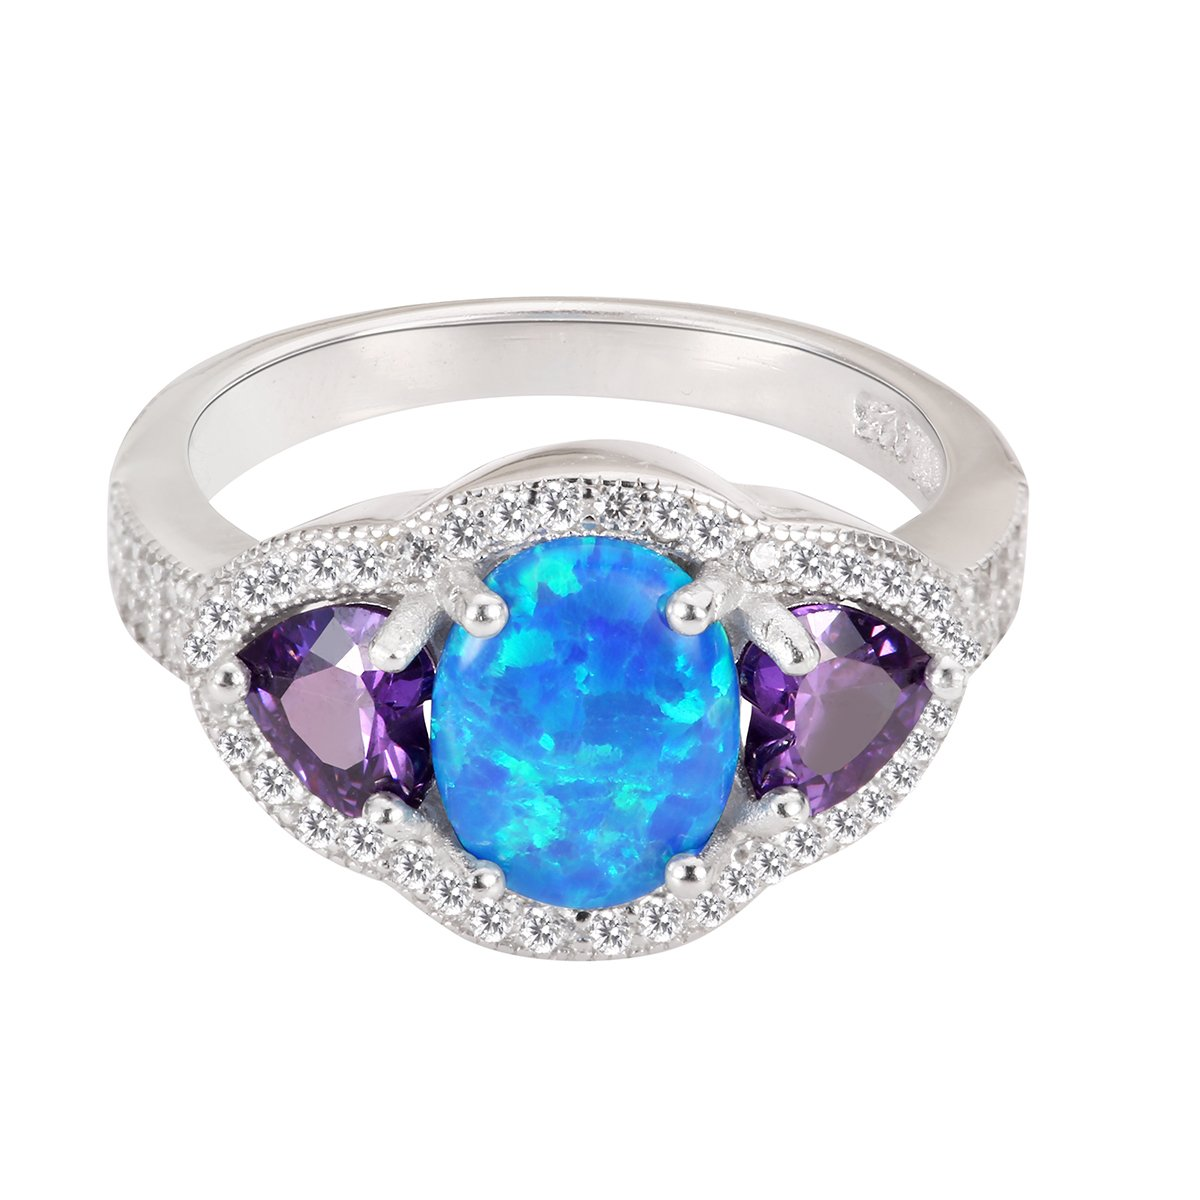 Princess Kylie Heart Sided Cubic Zirconia Ring Sterling Silver Color Options, Sizes 4-13